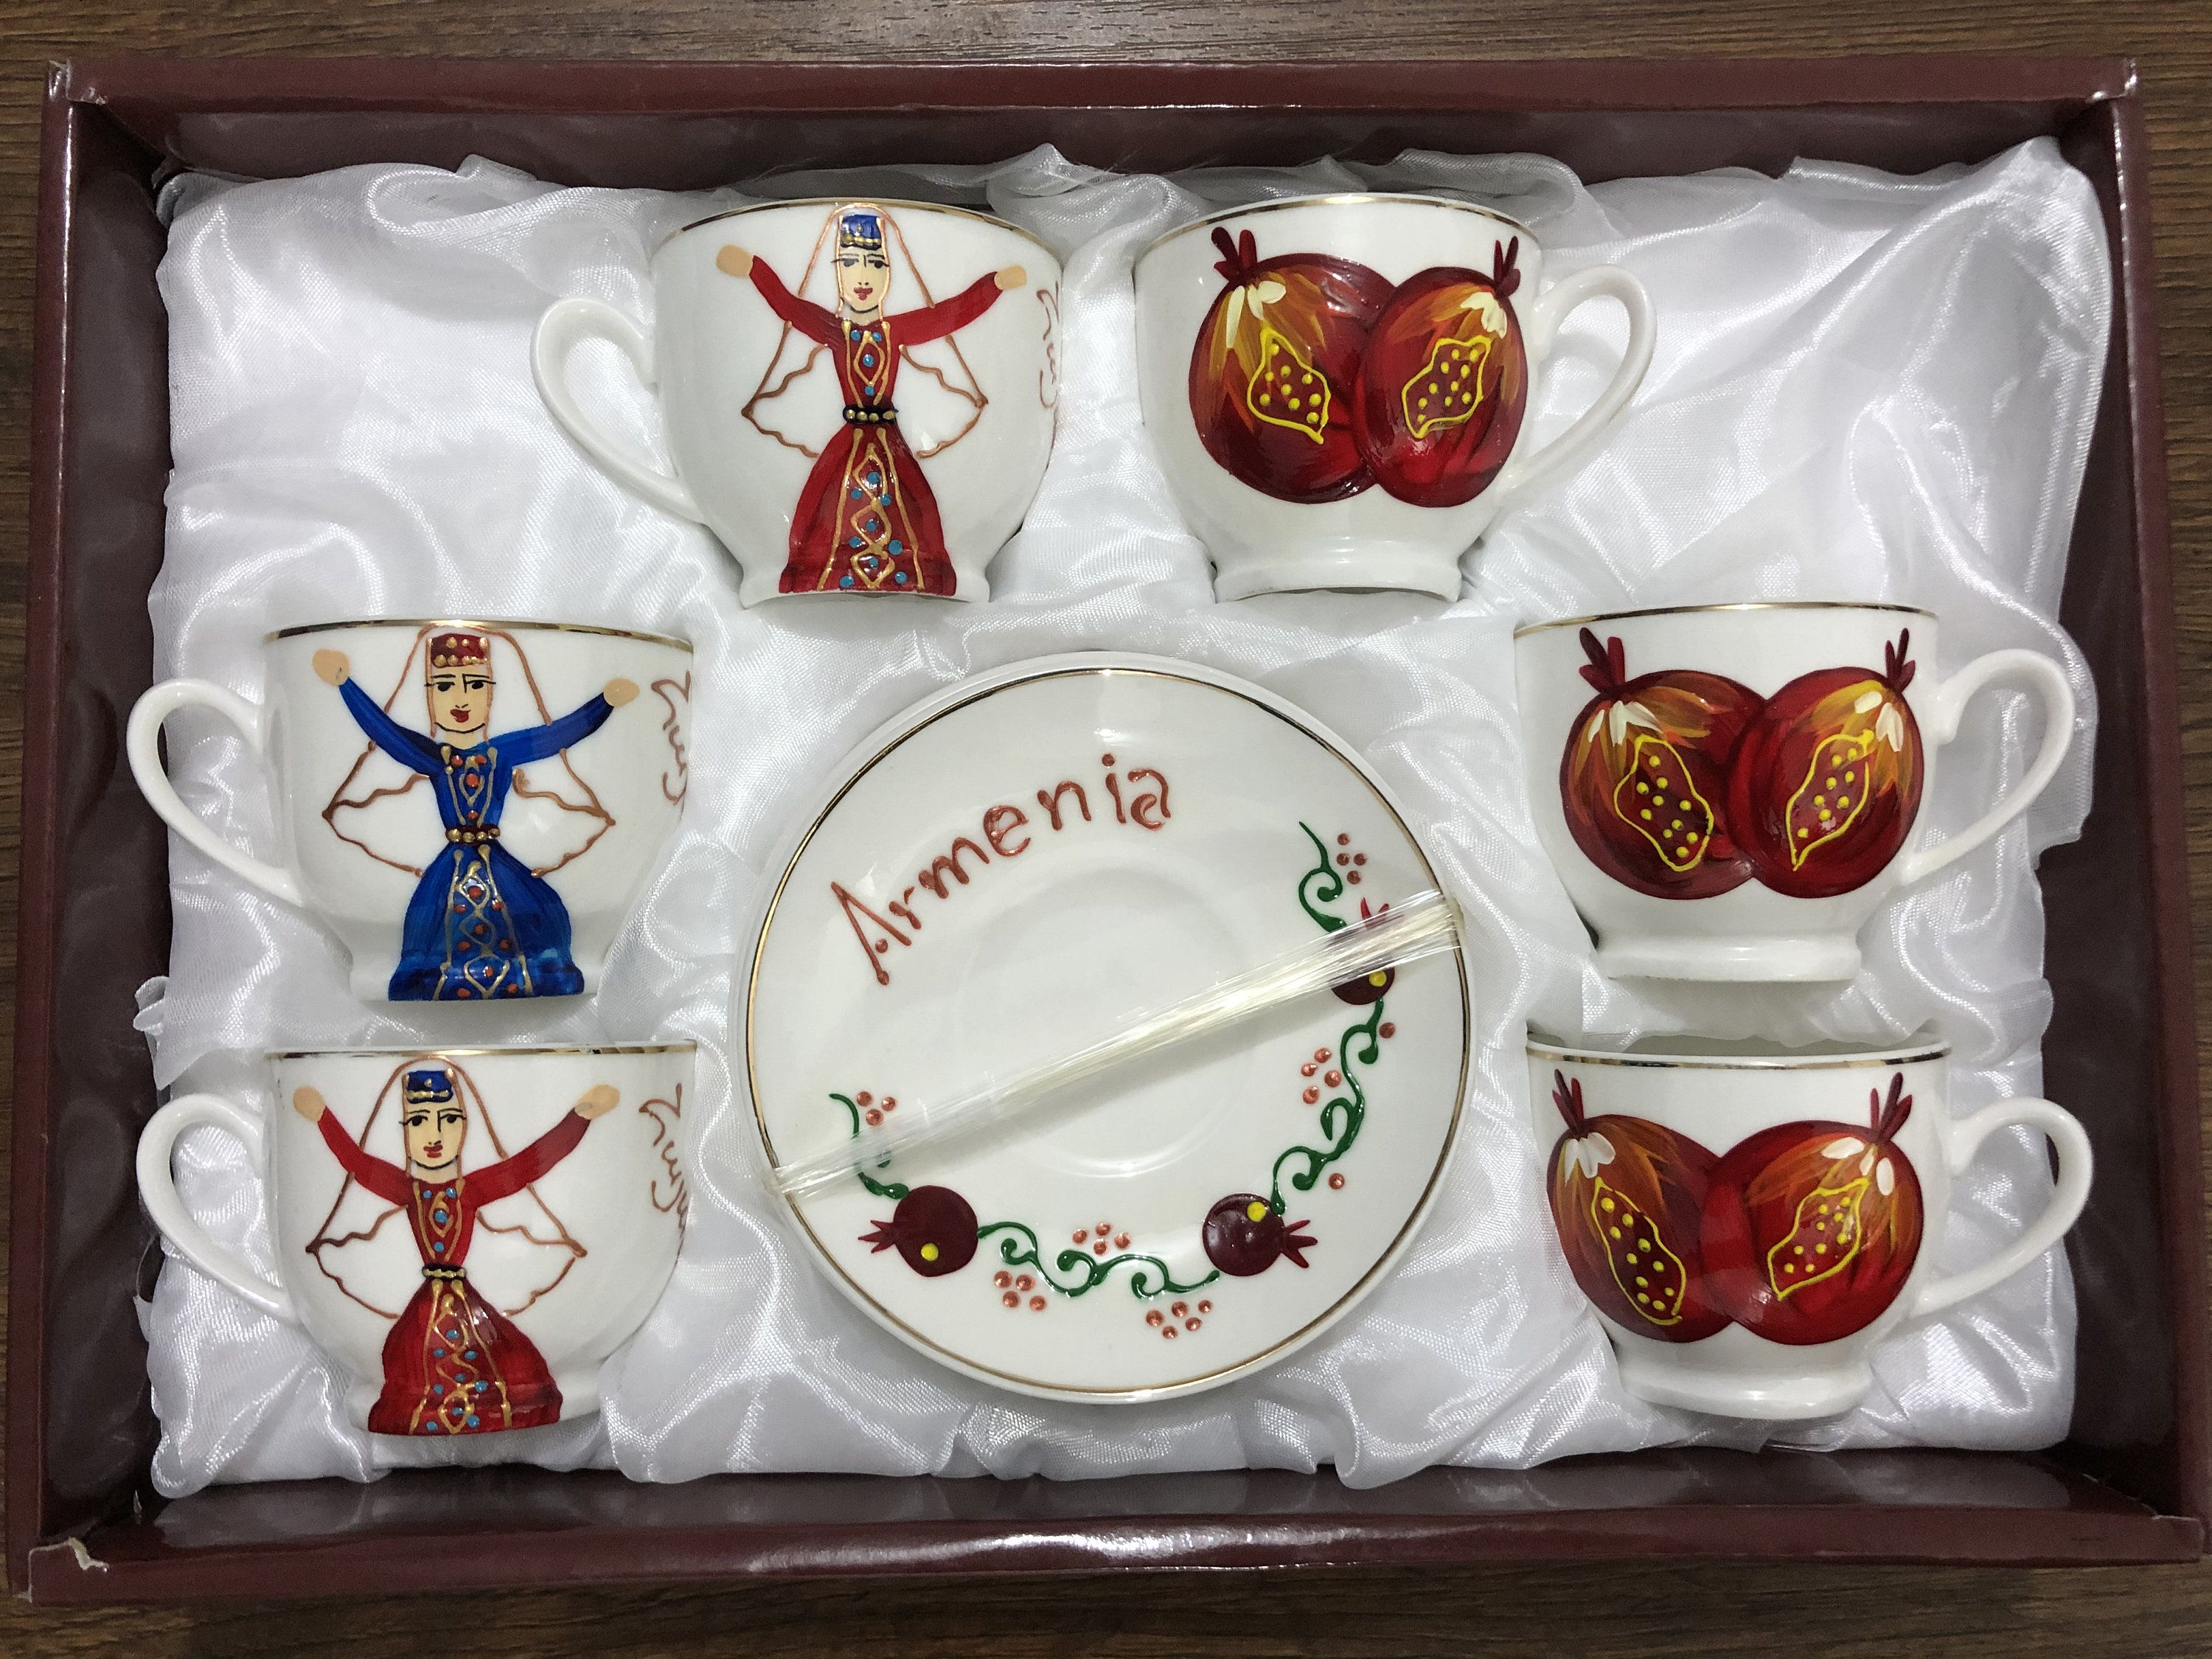 Armenian Tea and Coffe Cups, Ceramic Cups Armenian style, Tea Bowl, Armenian Gifts, National Armenian Dancer and Pomegranate, 6 Cups